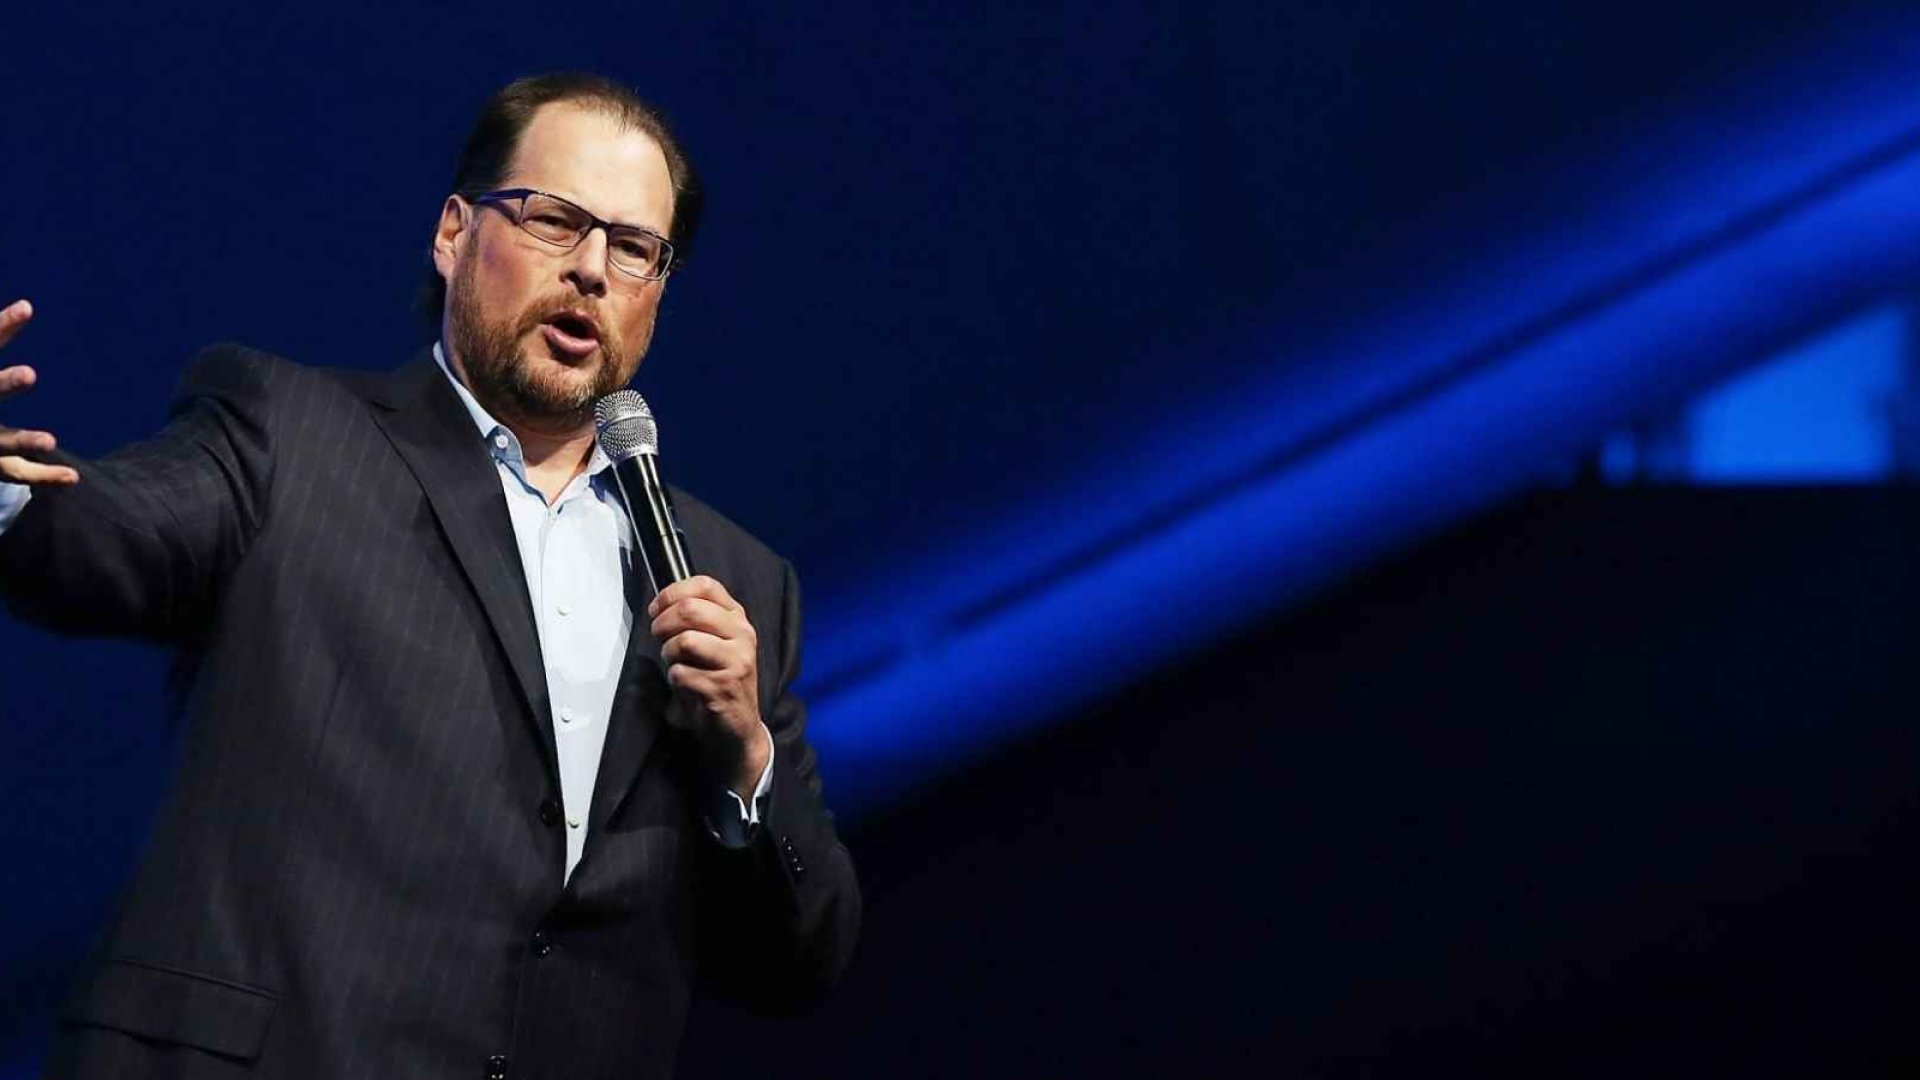 3 Questions Marc Benioff Wants to Ask Hillary Clinton and Donald Trump